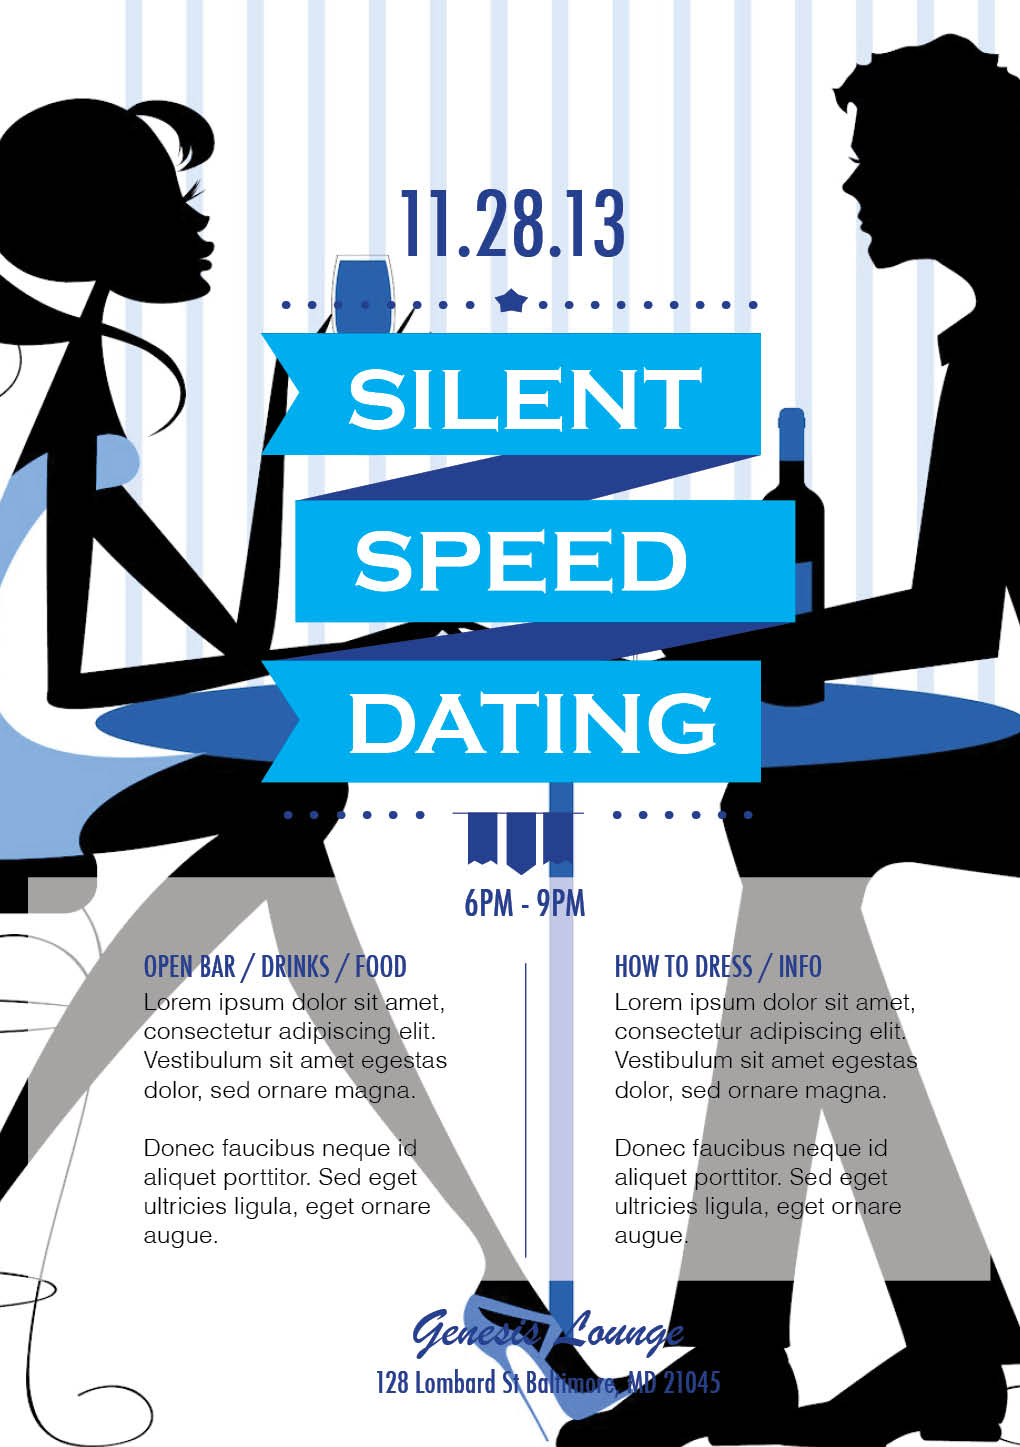 speed dating date club Speed dating is successful, fun, exciting and may lead to something special for you speed dating is a great way to experience a slew of mini-dates before de.